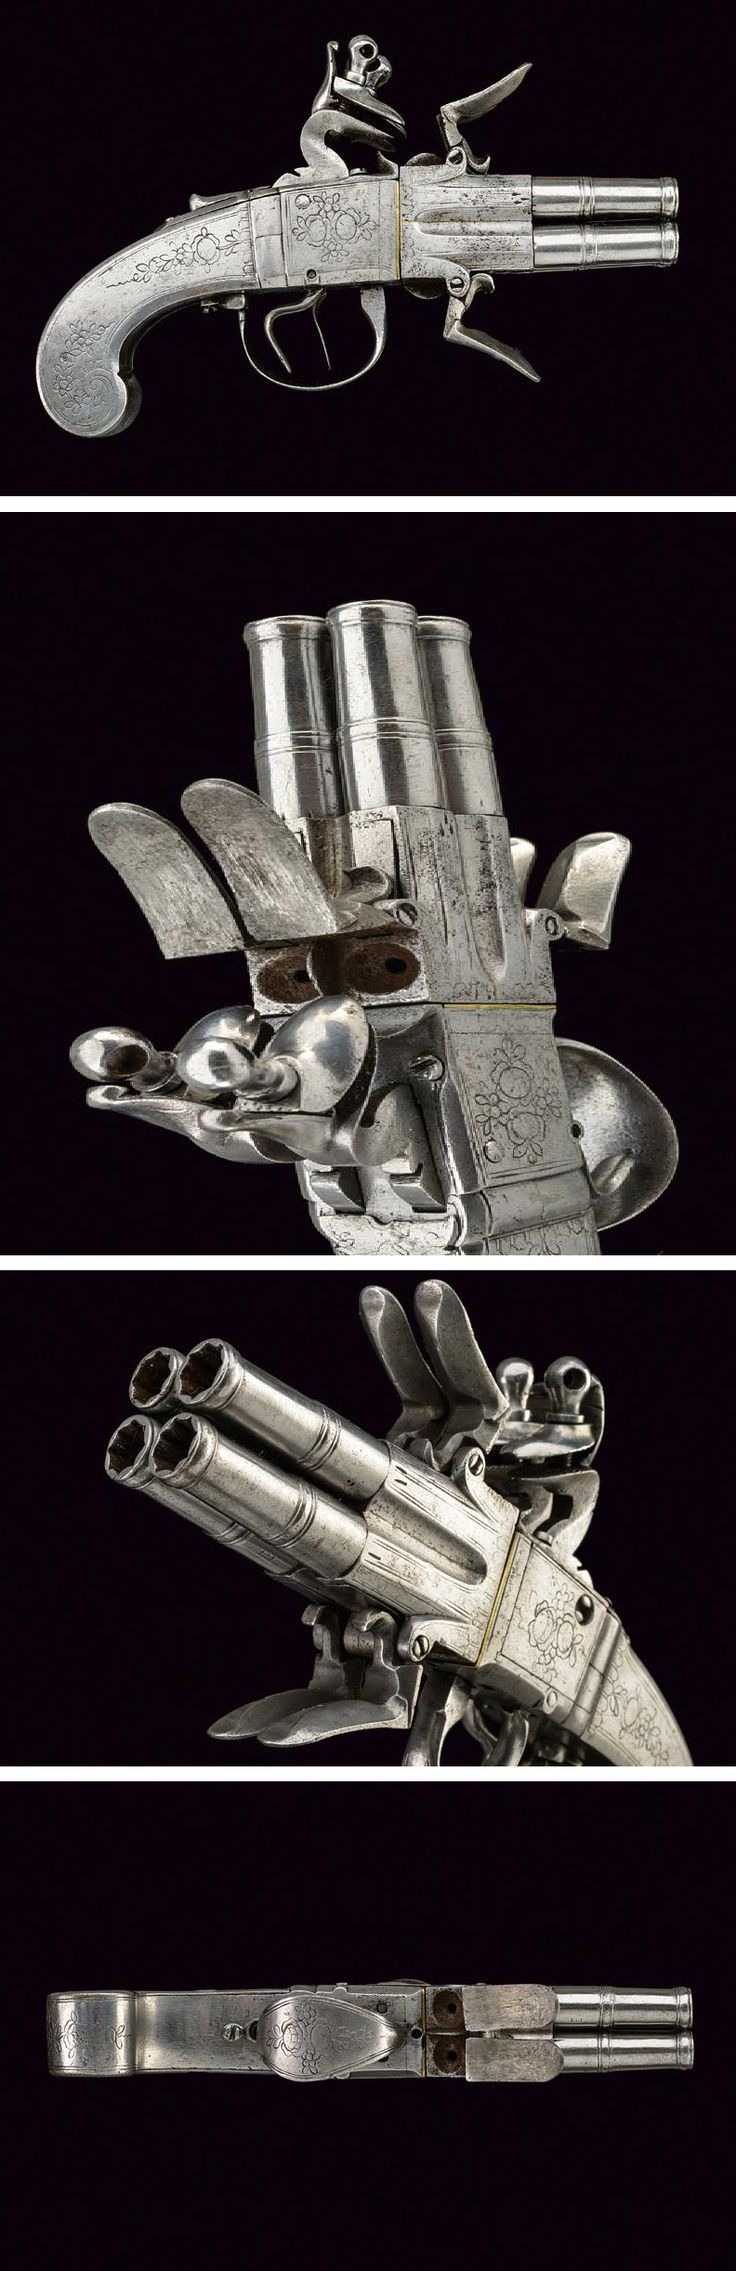 A SCARCE, COMPLETELY IRON, PERCUSSION POCKET PISTOL WITH FOUR ROTATABLE BARRELS.France, Second half of the 18th Century.